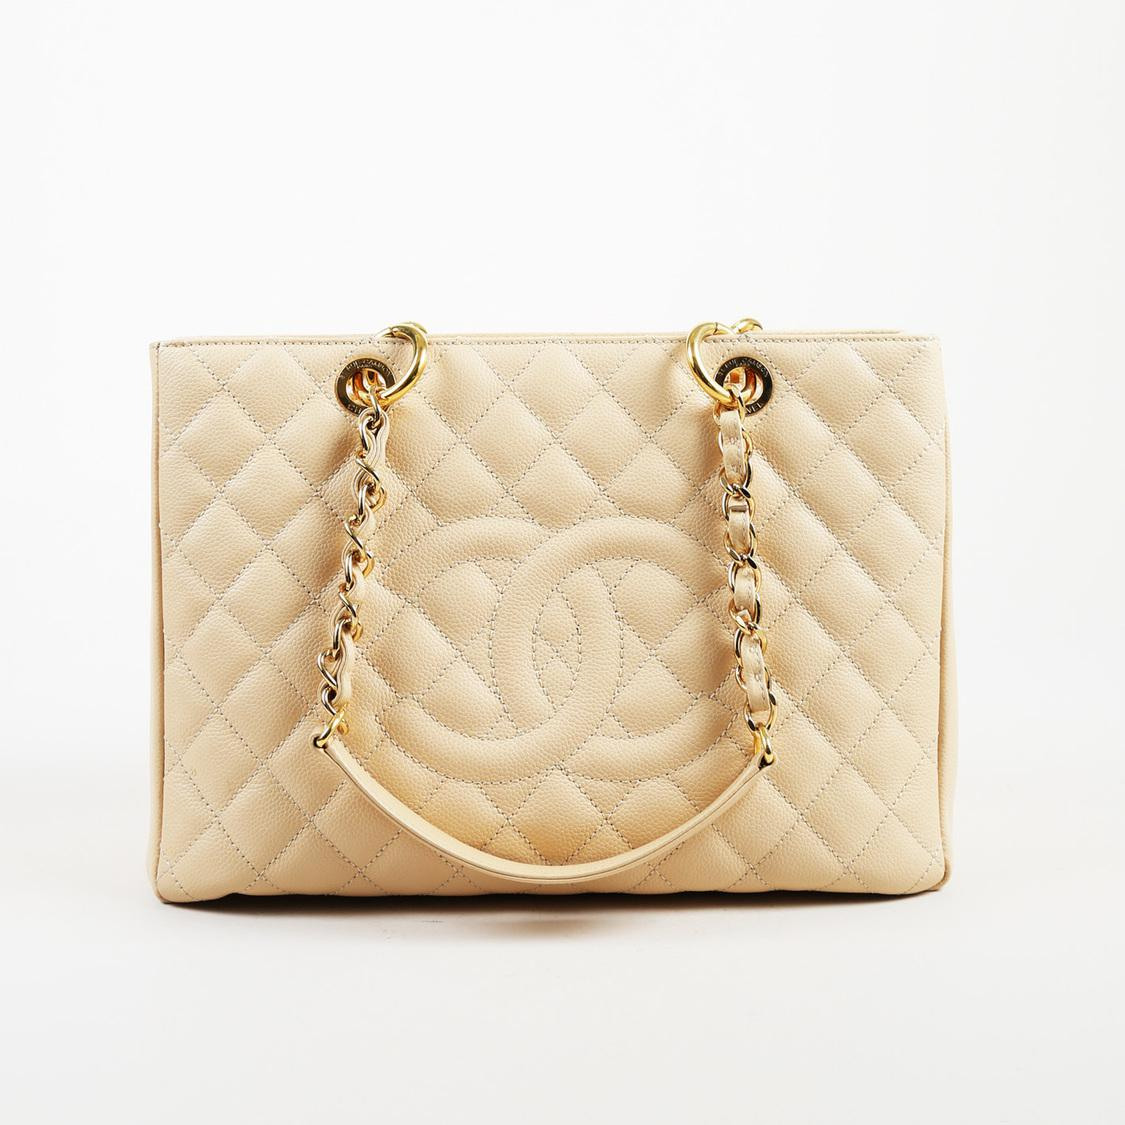 Lyst - Chanel 2010-2011 Cream Caviar Leather Quilted  cc